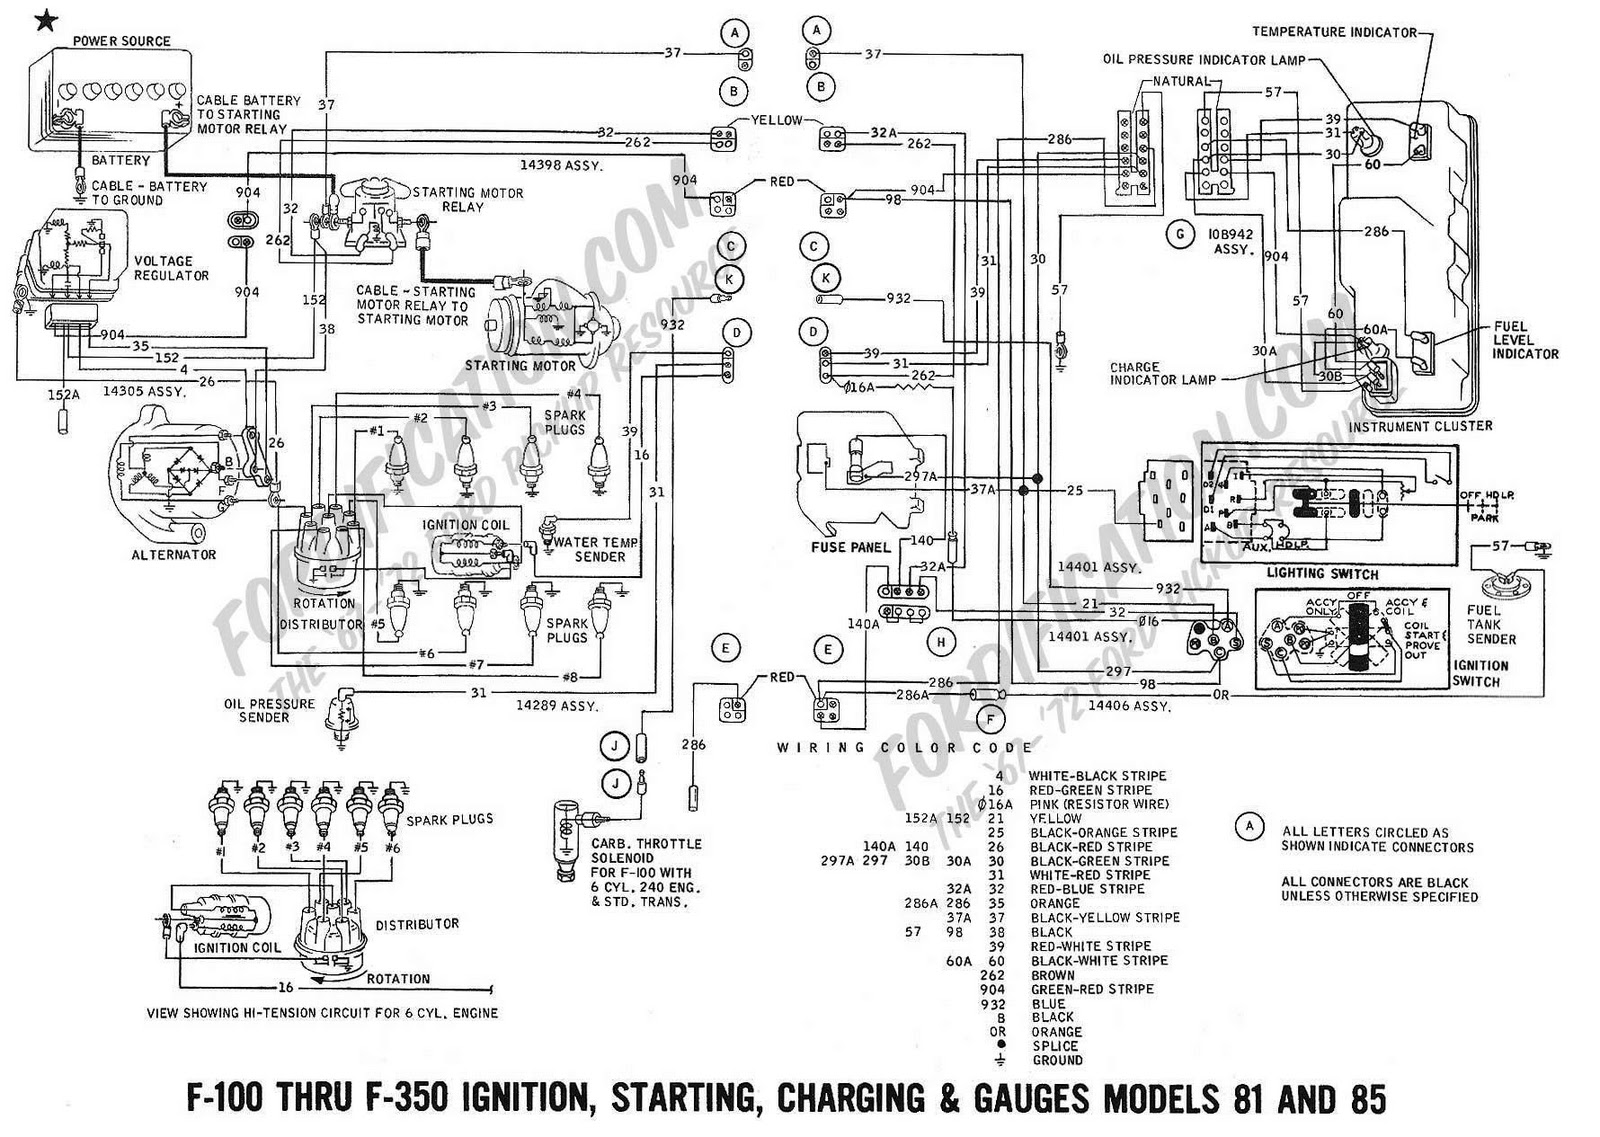 Horns Dont Work as well 67 Ford Galaxie Wiring Diagram additionally 1963 Ford Galaxie Fuse Box Diagram together with 1969 Ford F100 F350 Ignition Starting additionally 1965 Chevy Truck Steering Column Diagram. on 1966 ford falcon steering column